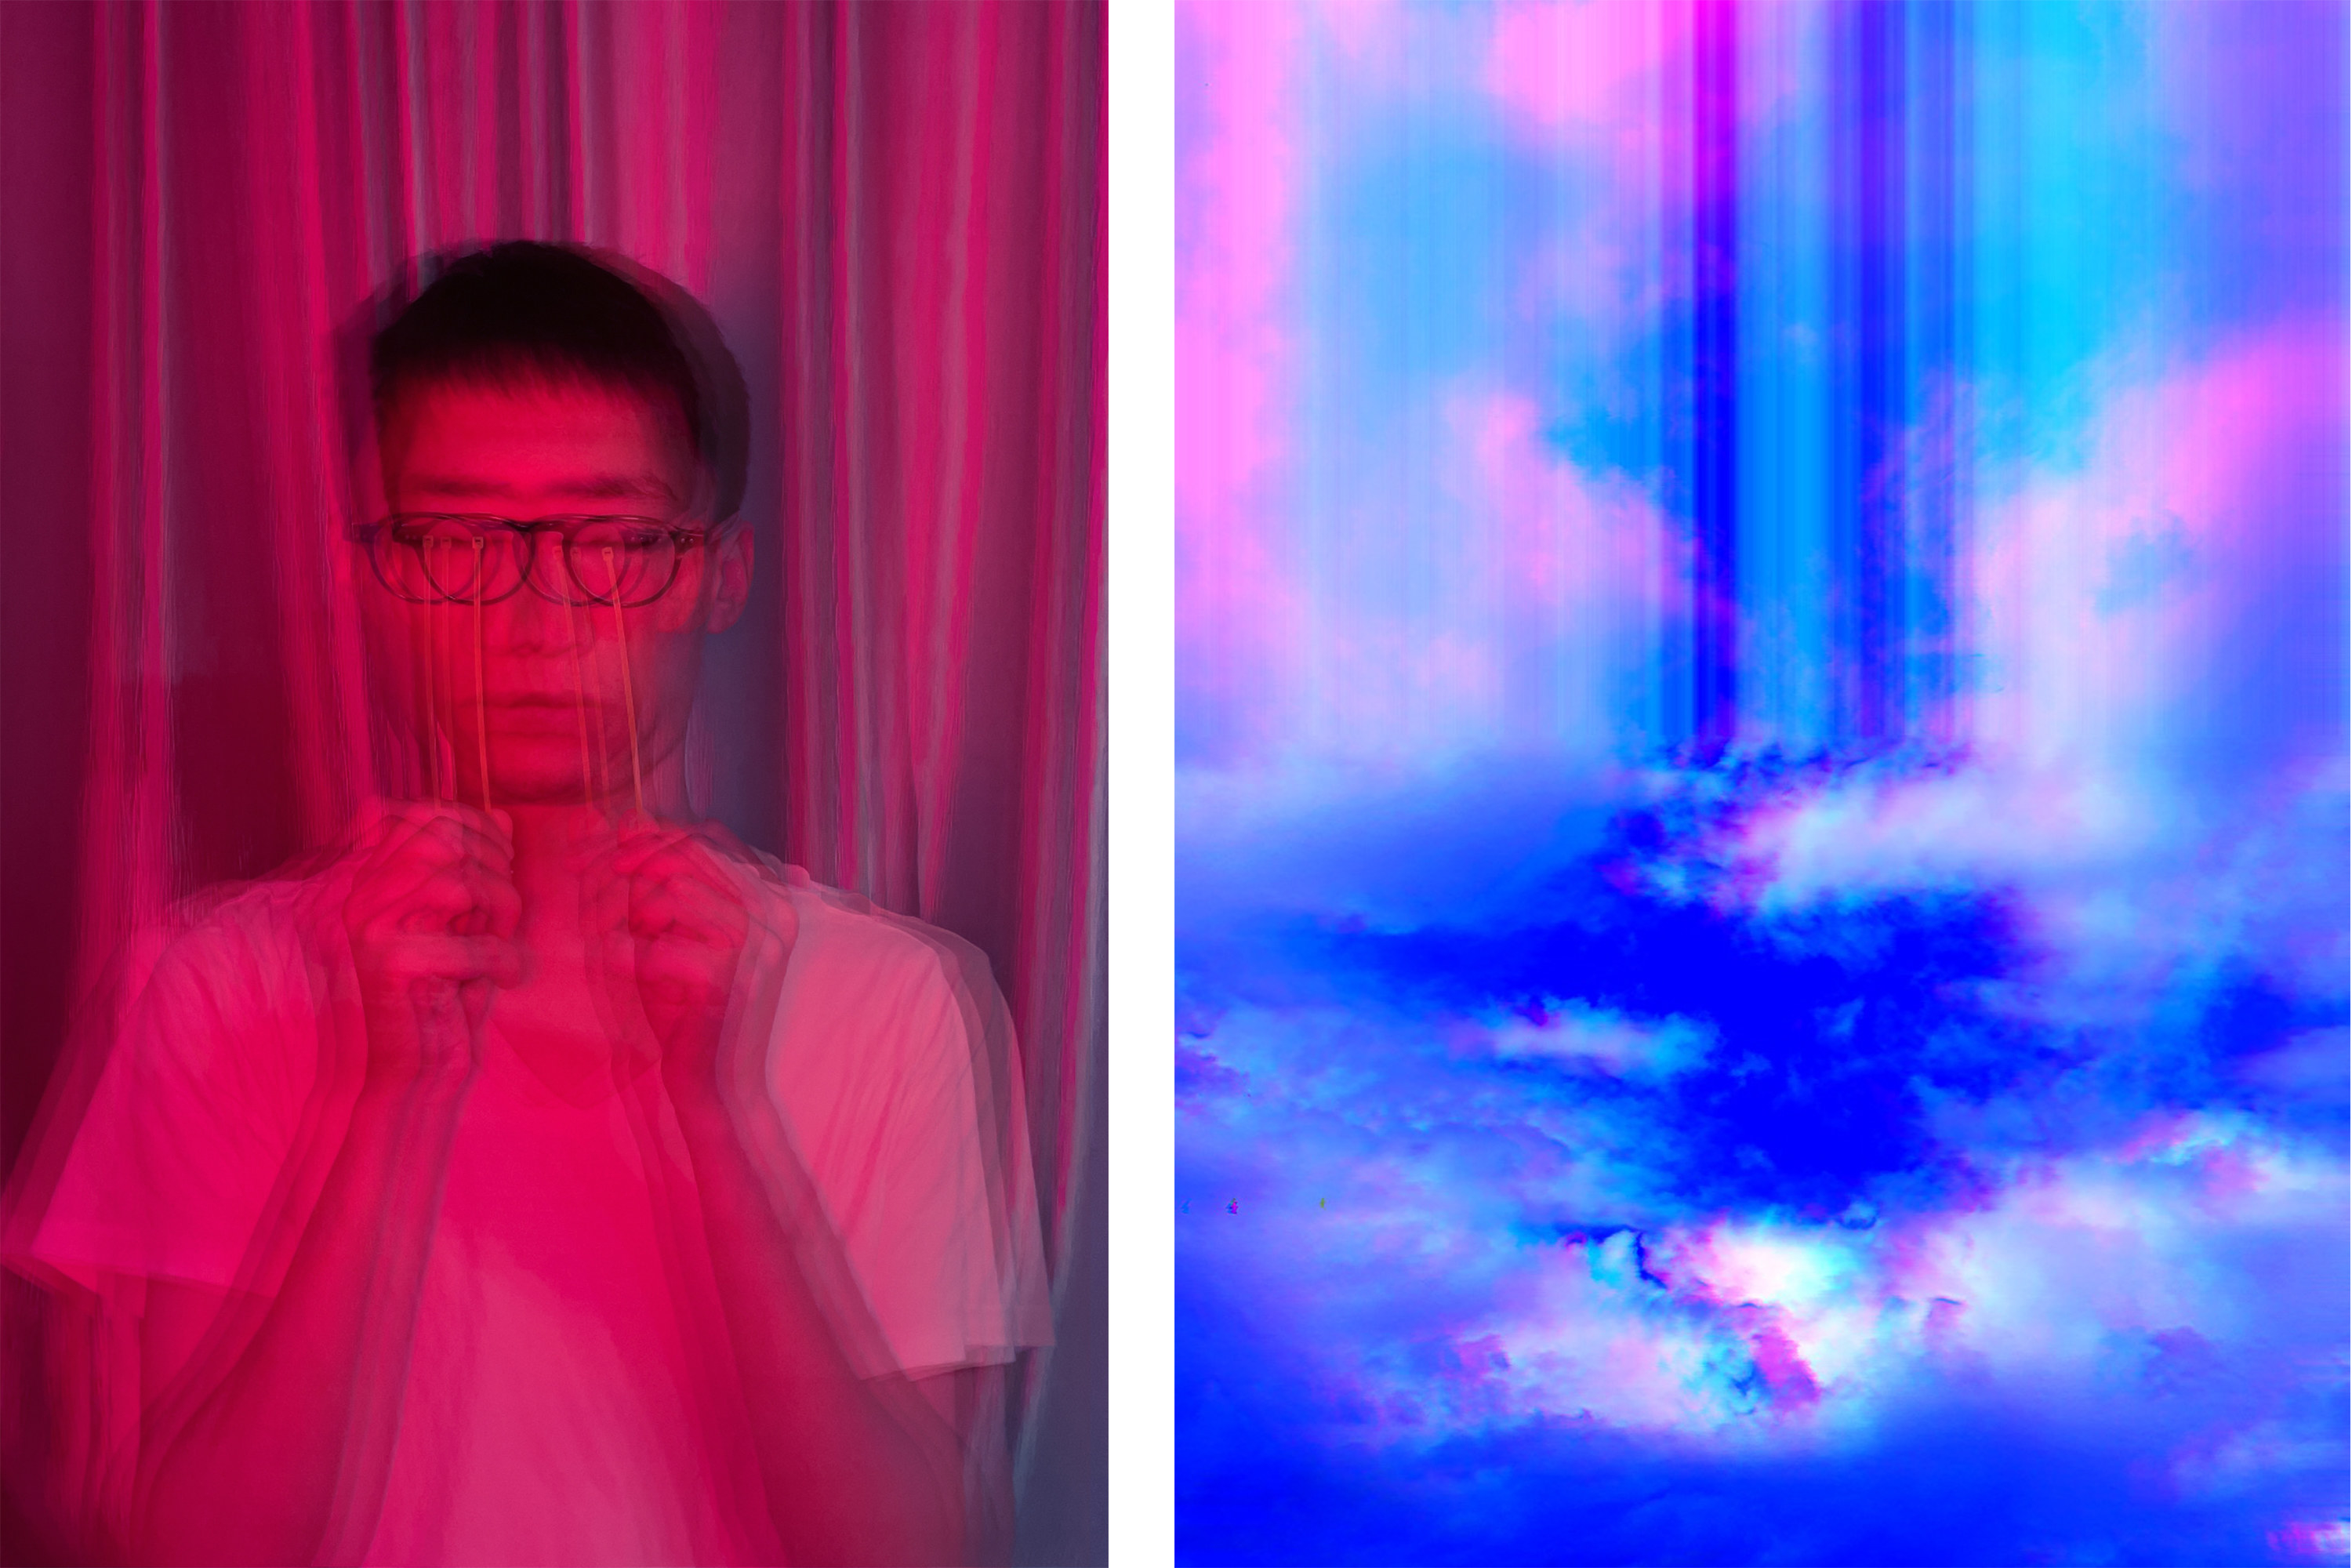 Two side-by-side photos show a blurry person holding up pencils in front of their eyes and spectral light through the clouds